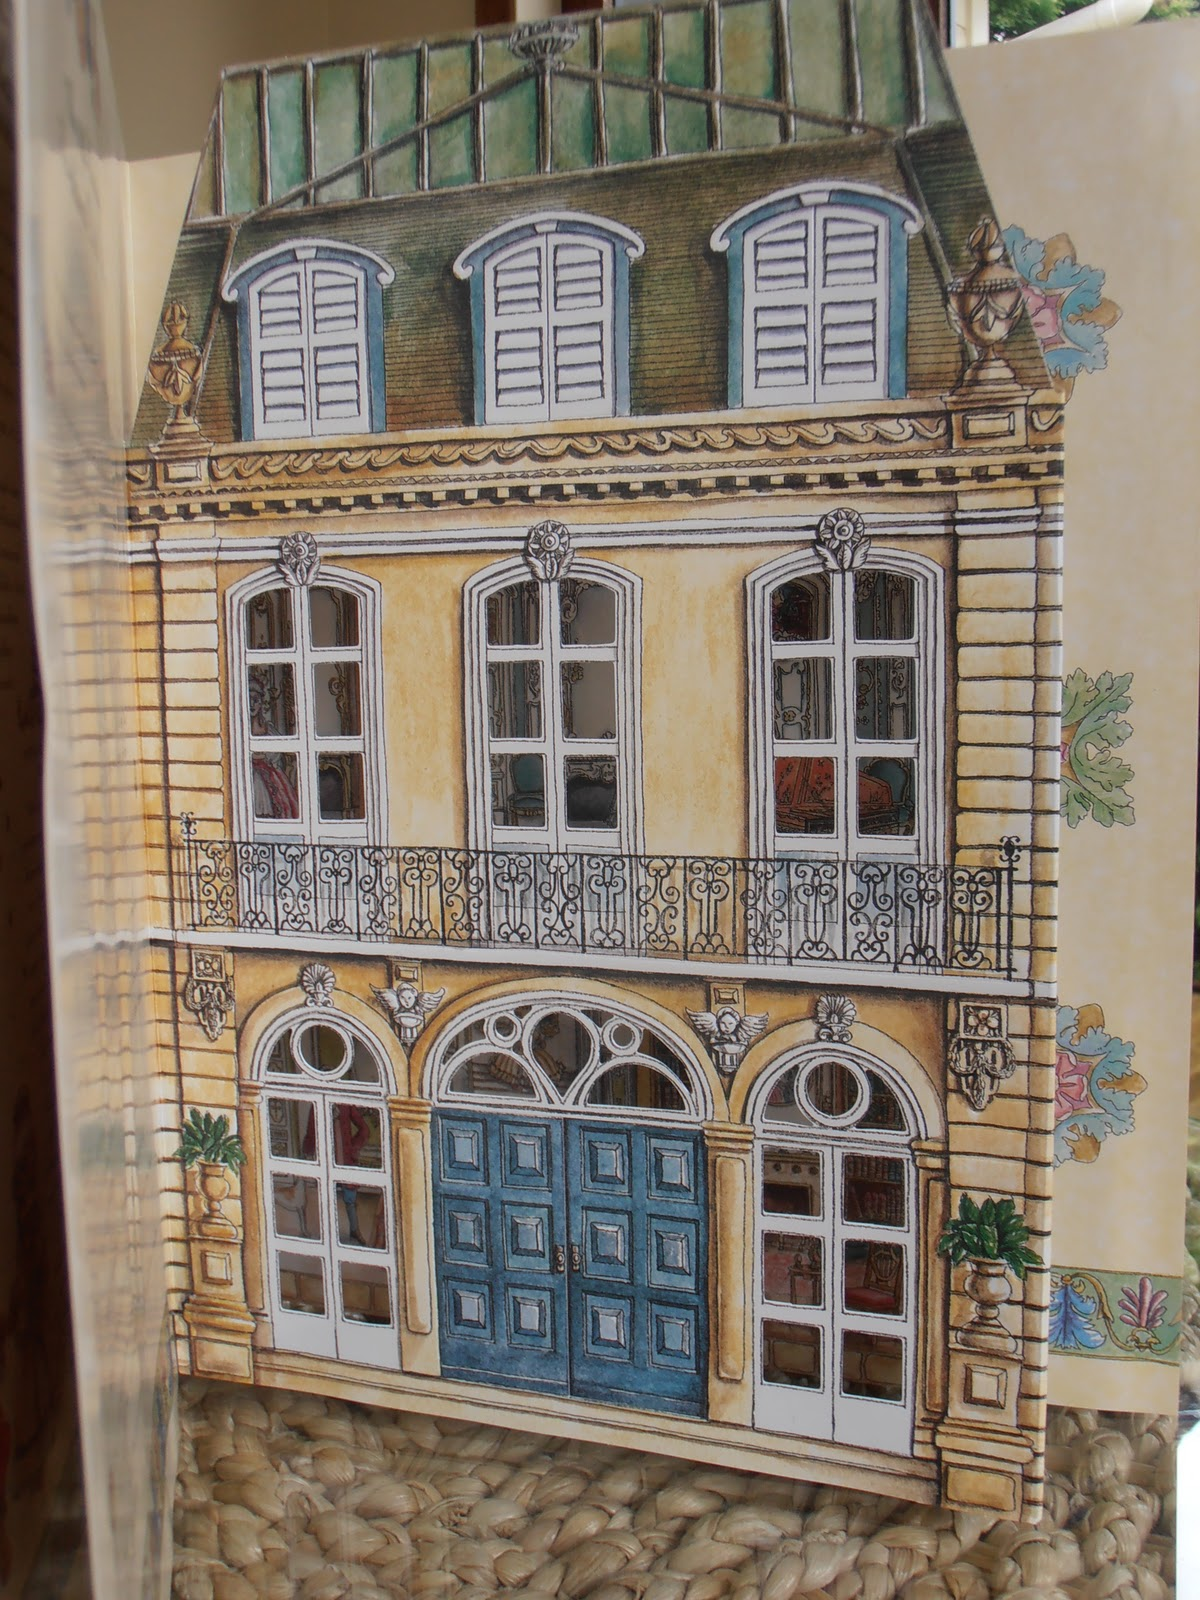 Dolls Houses And Minis January 2012